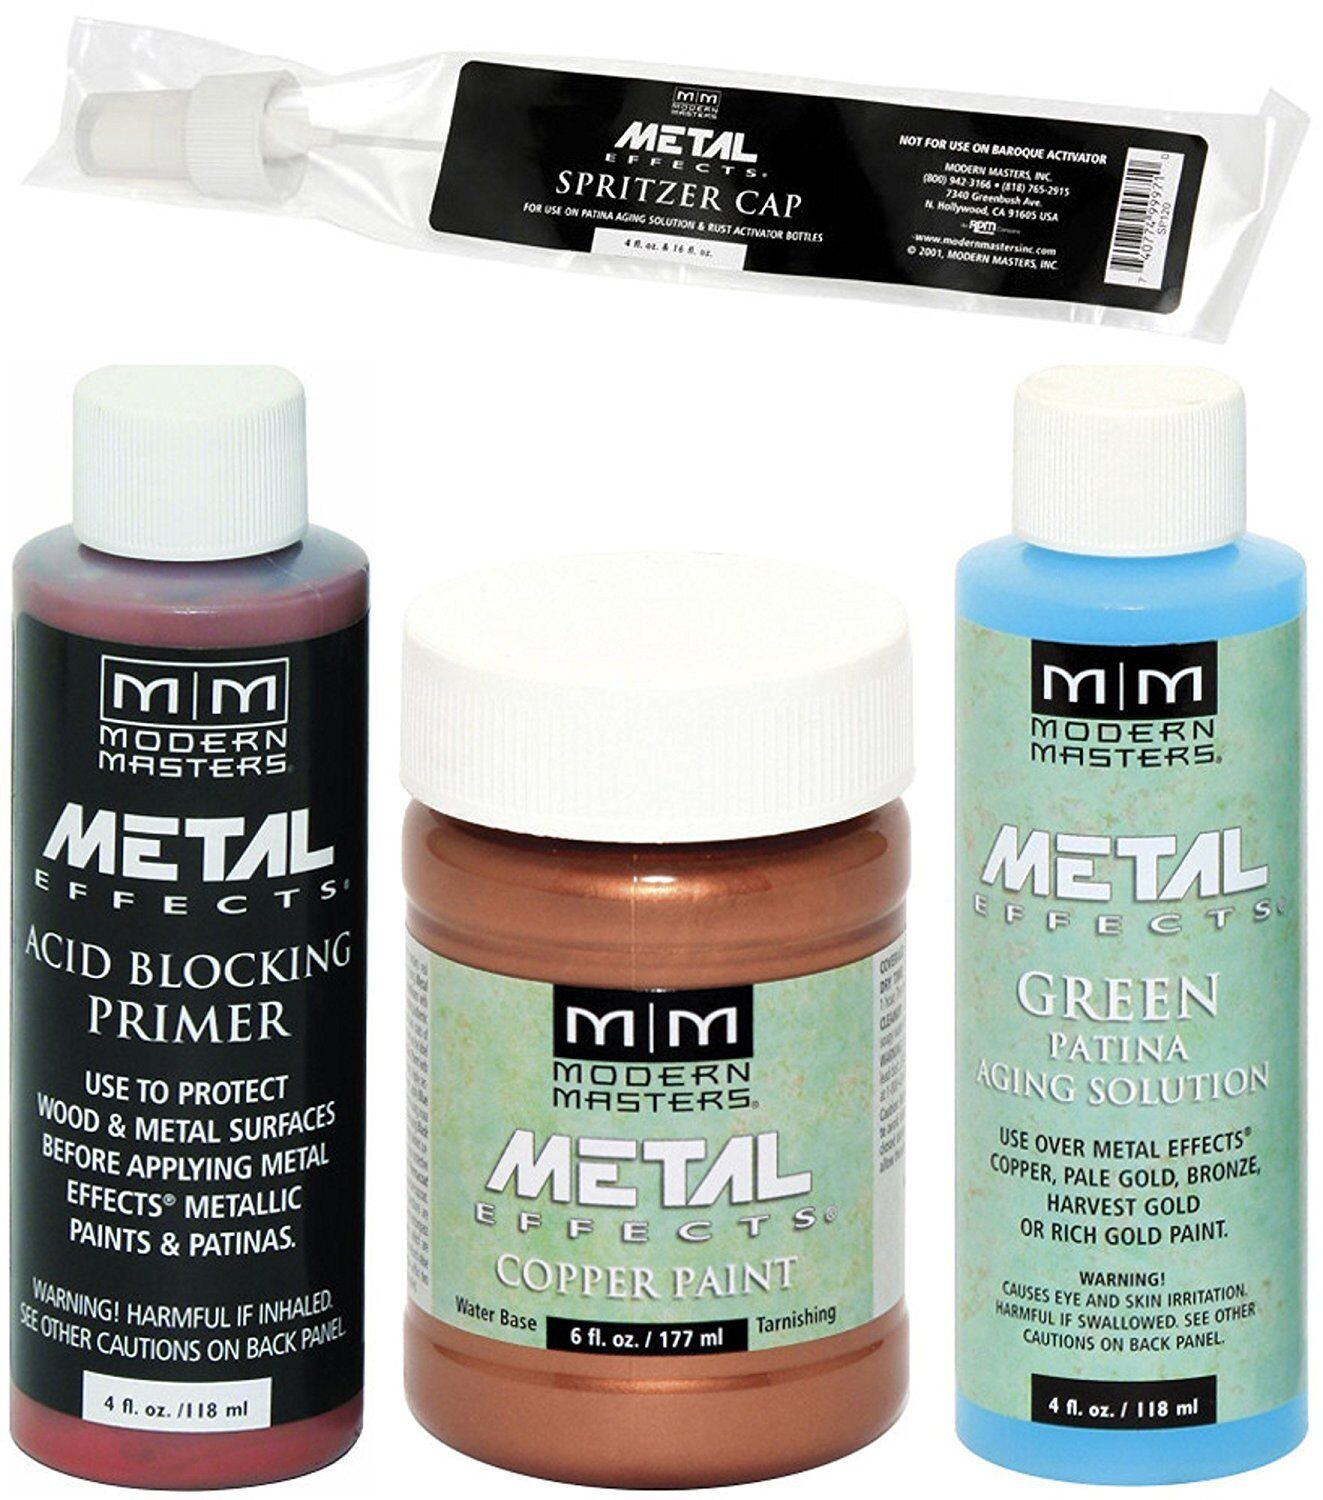 Modern Masters Metal Effects Copper Paint and Green Patina 4 oz Kit + Primer Building & Hardware